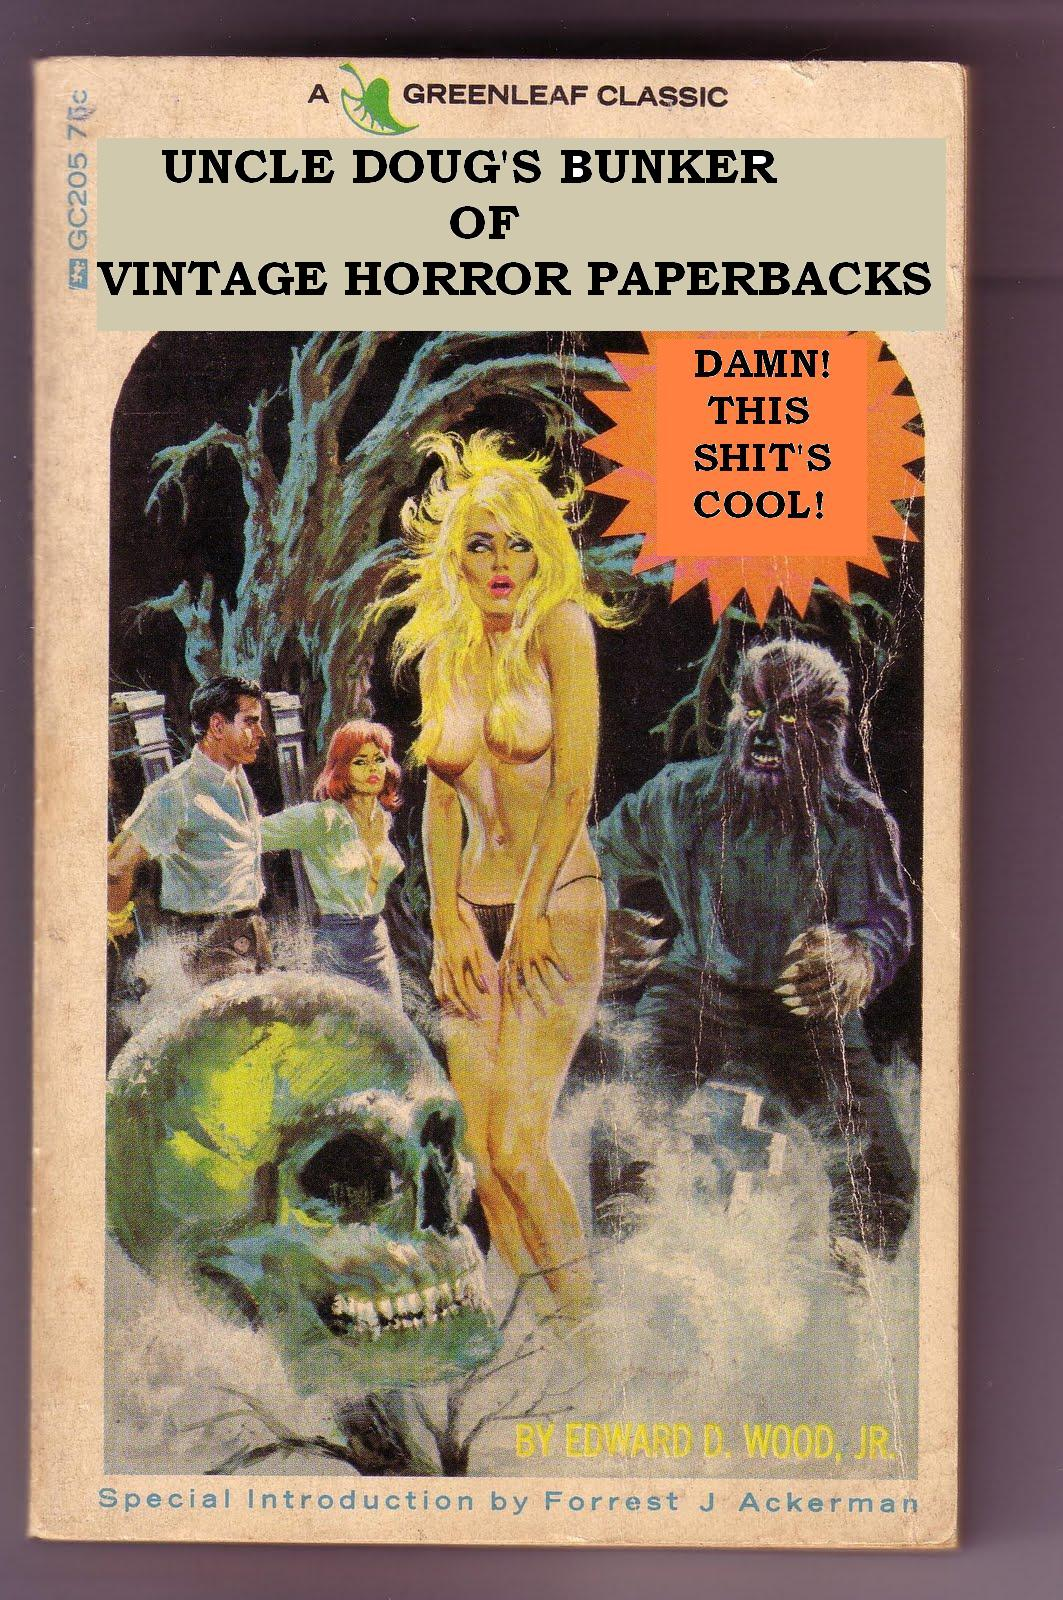 Uncle Doug's Bunker of Vintage Horror Paperbacks